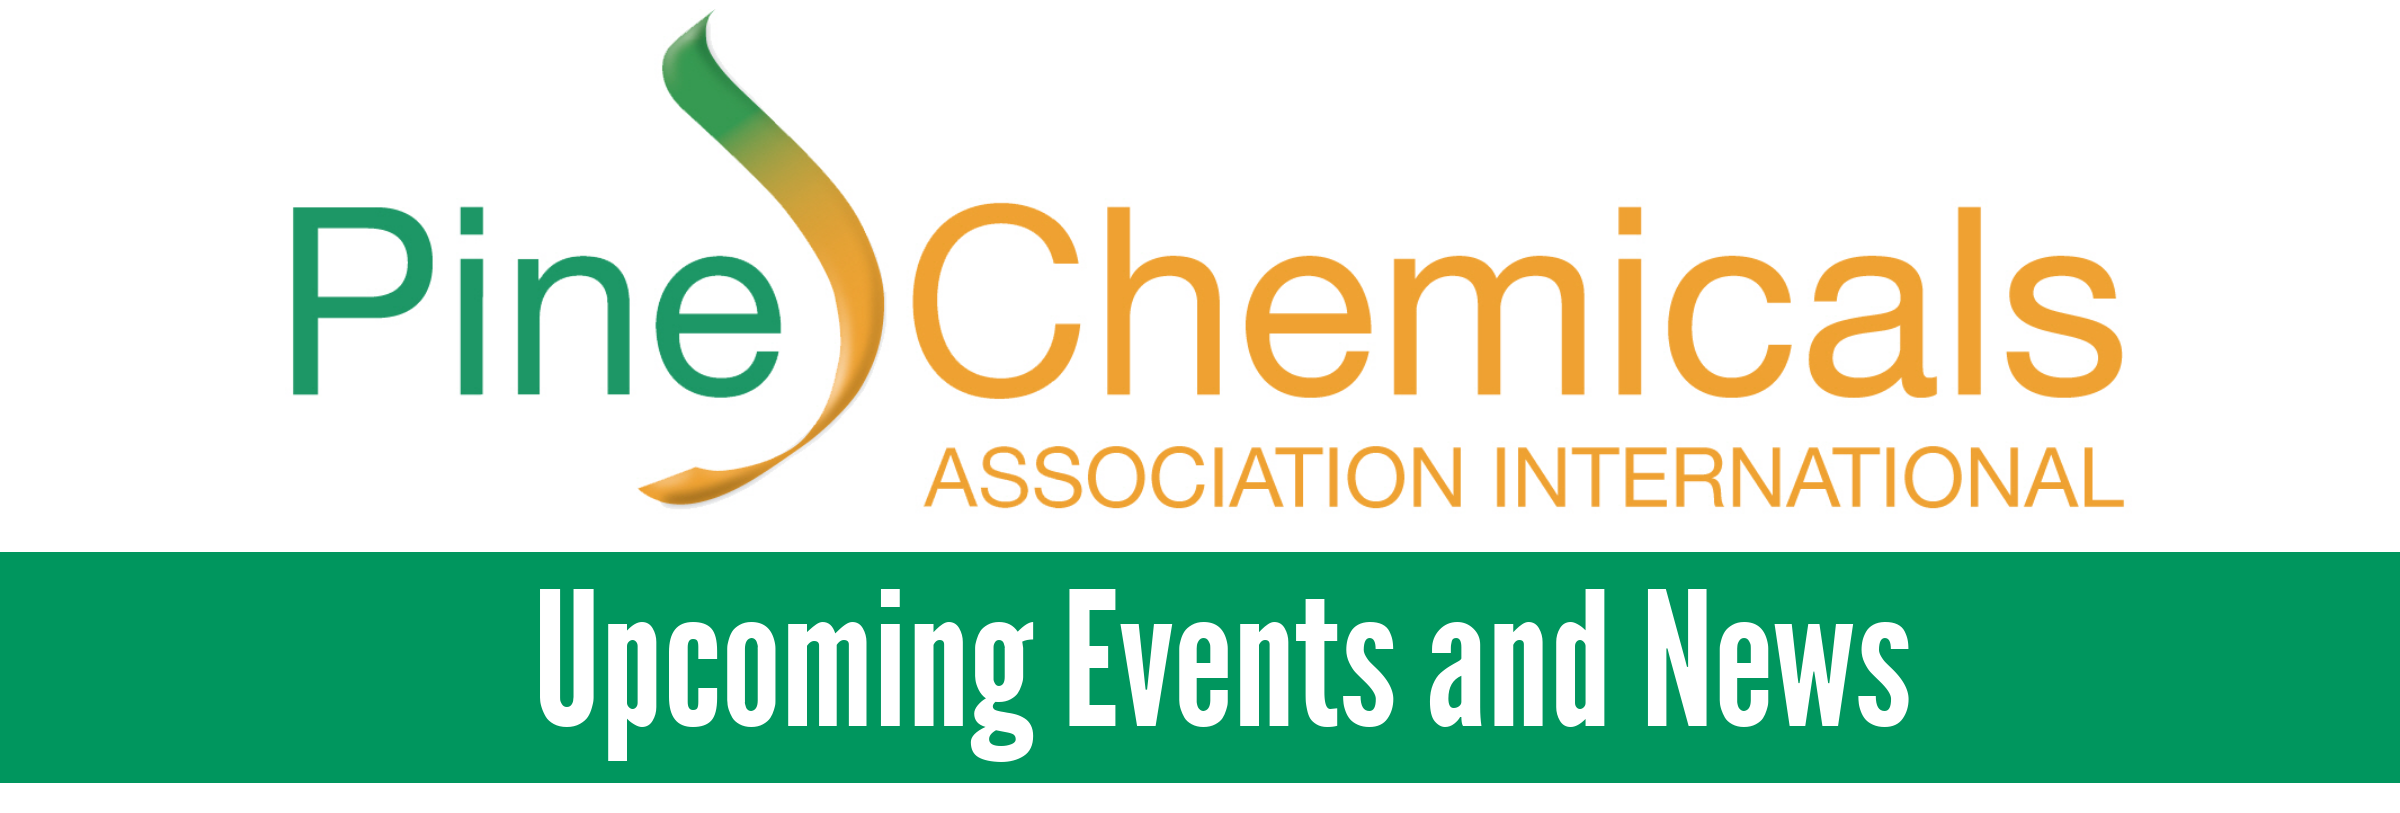 Pine Chemicals Association International Newsletter